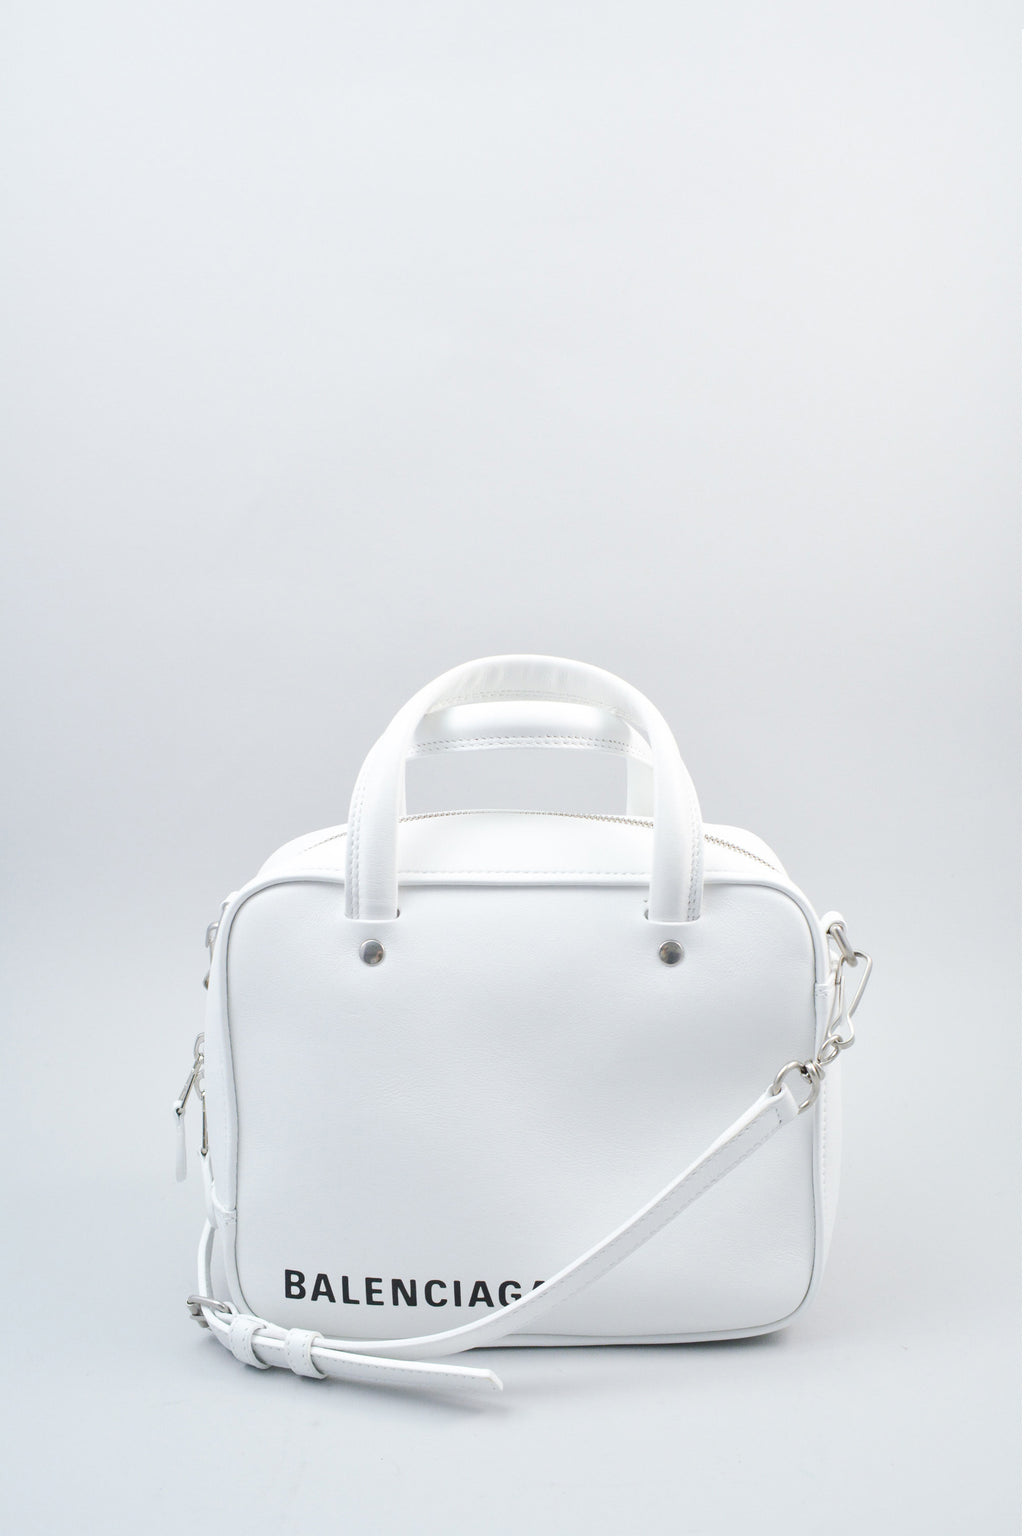 Balenciaga White Triangle Square Bag